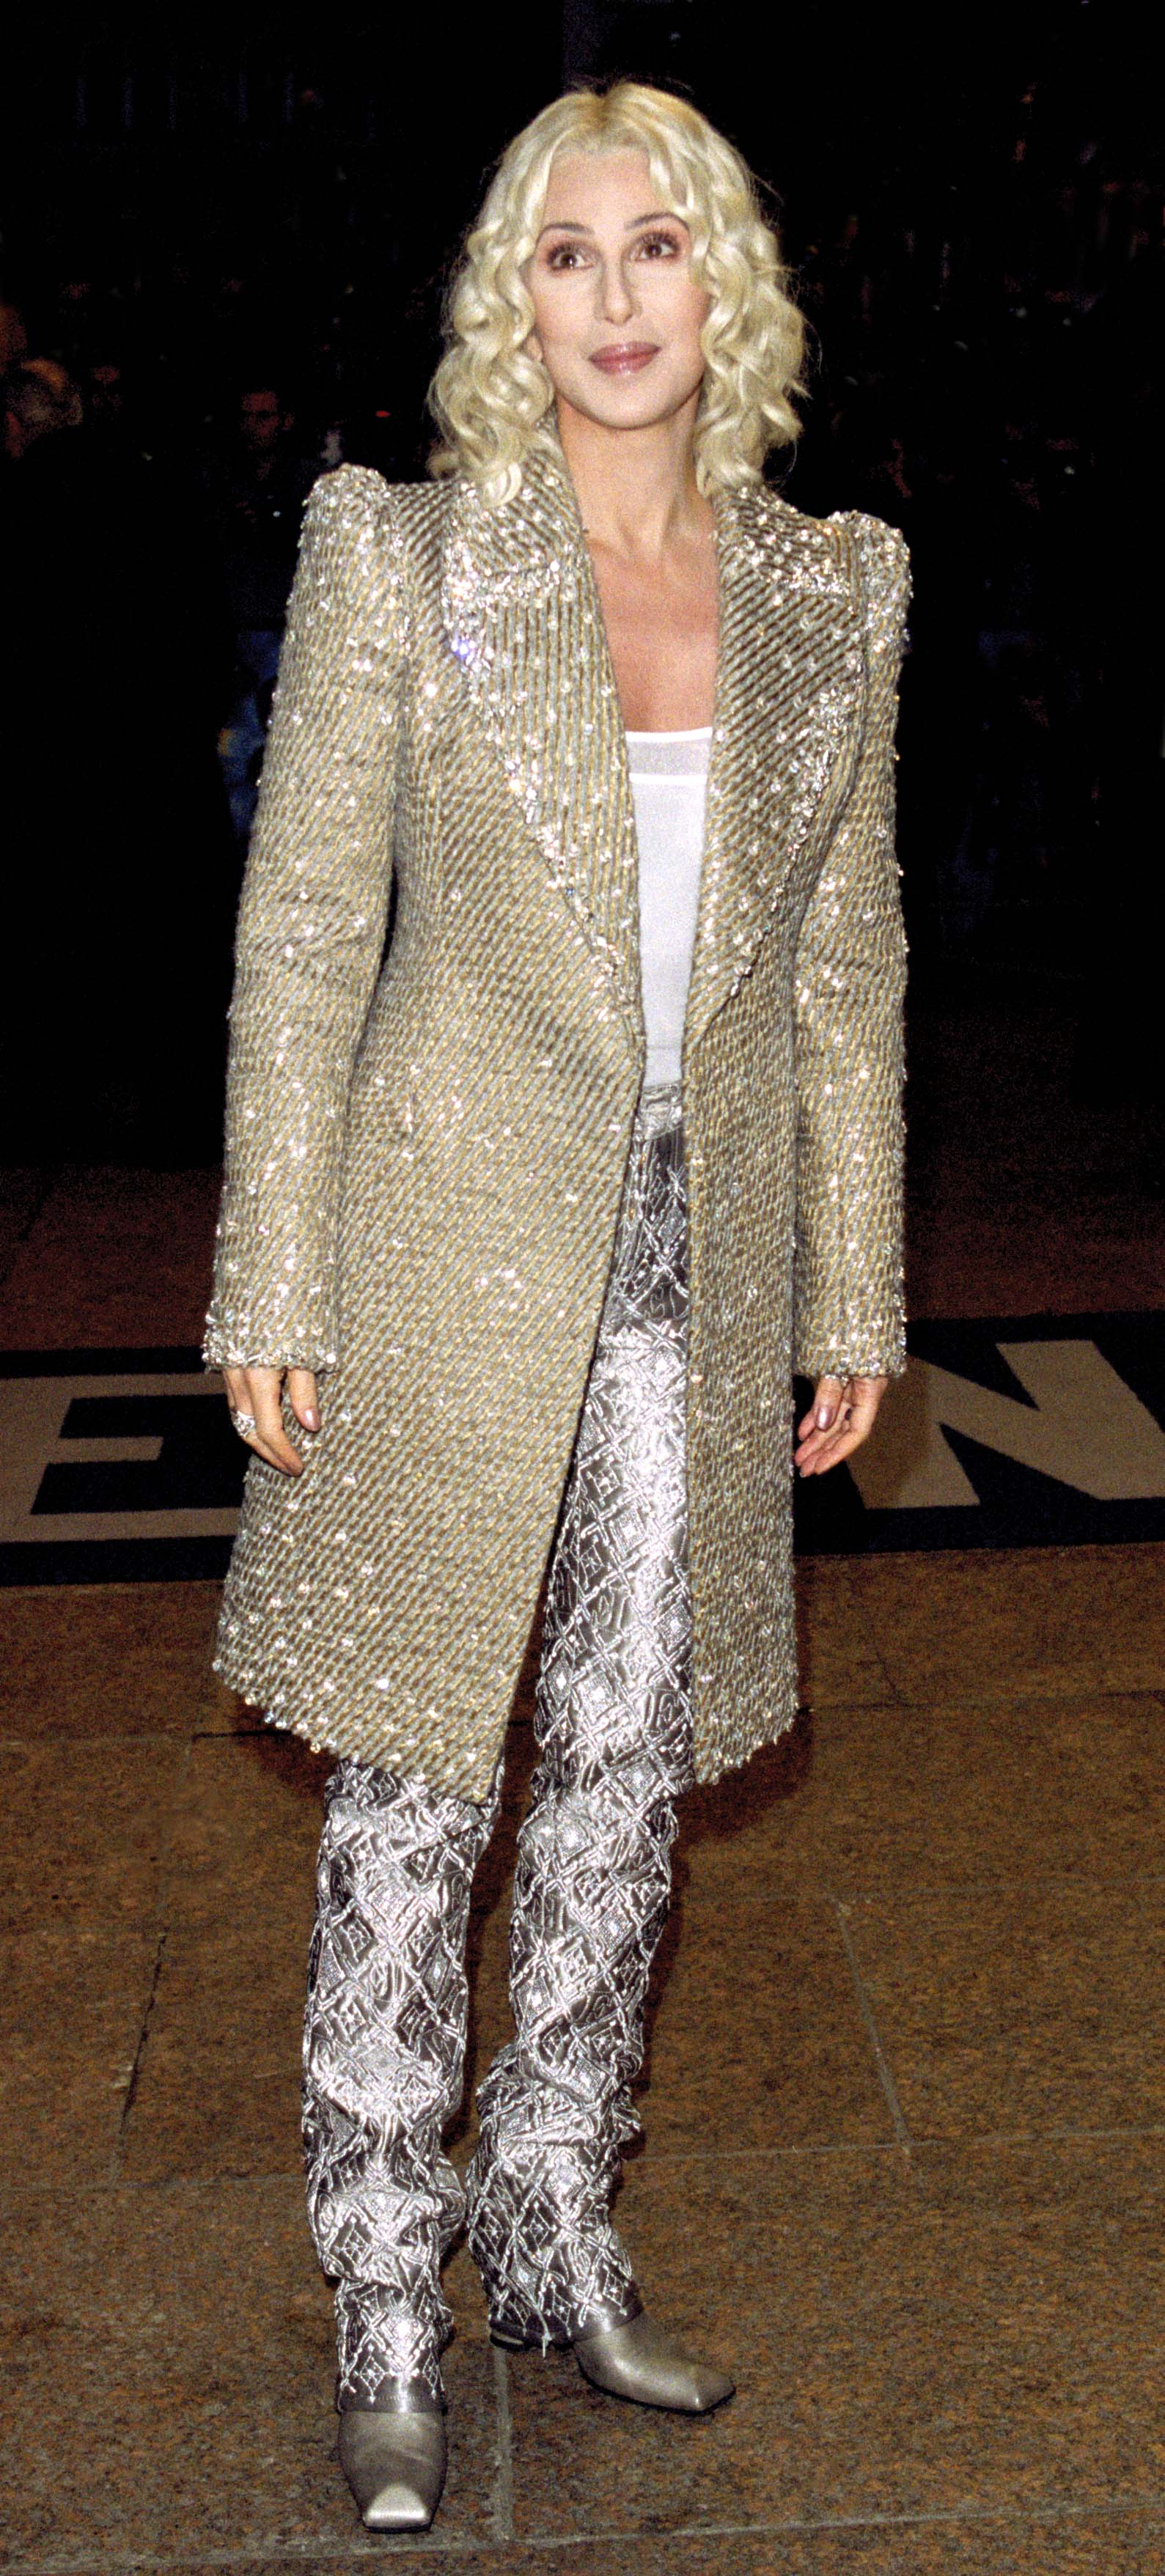 Cher attends the Harry Potter And The Philosopher's Stone premiere In London on Nov. 4, 2001.